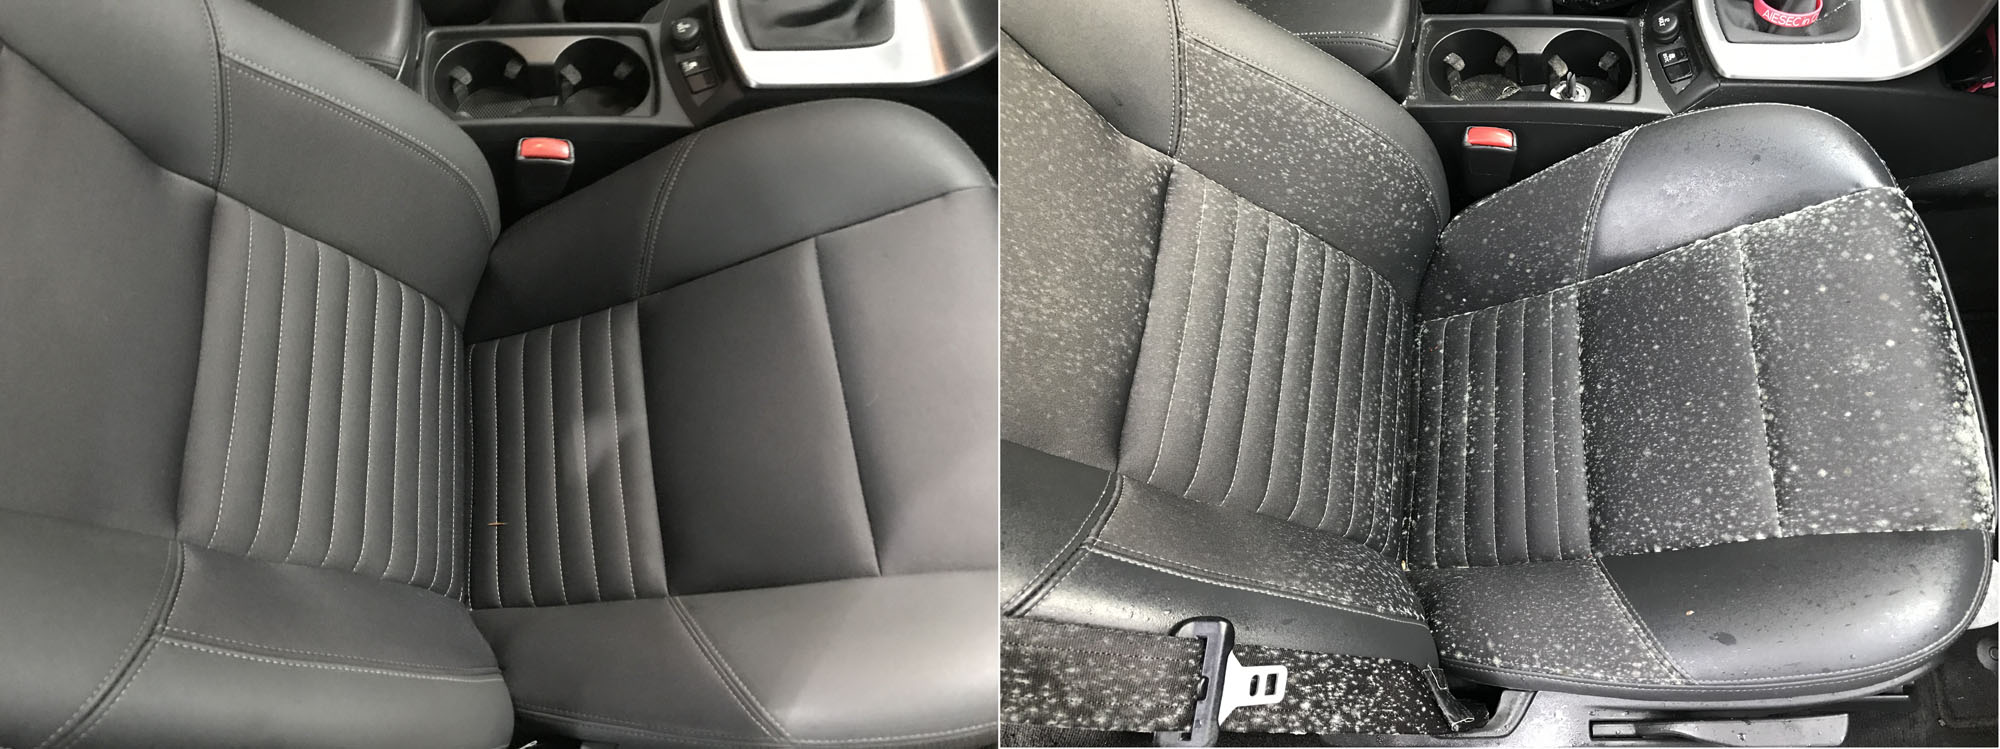 Seat Mold before and after Nov 30 2018.jpg